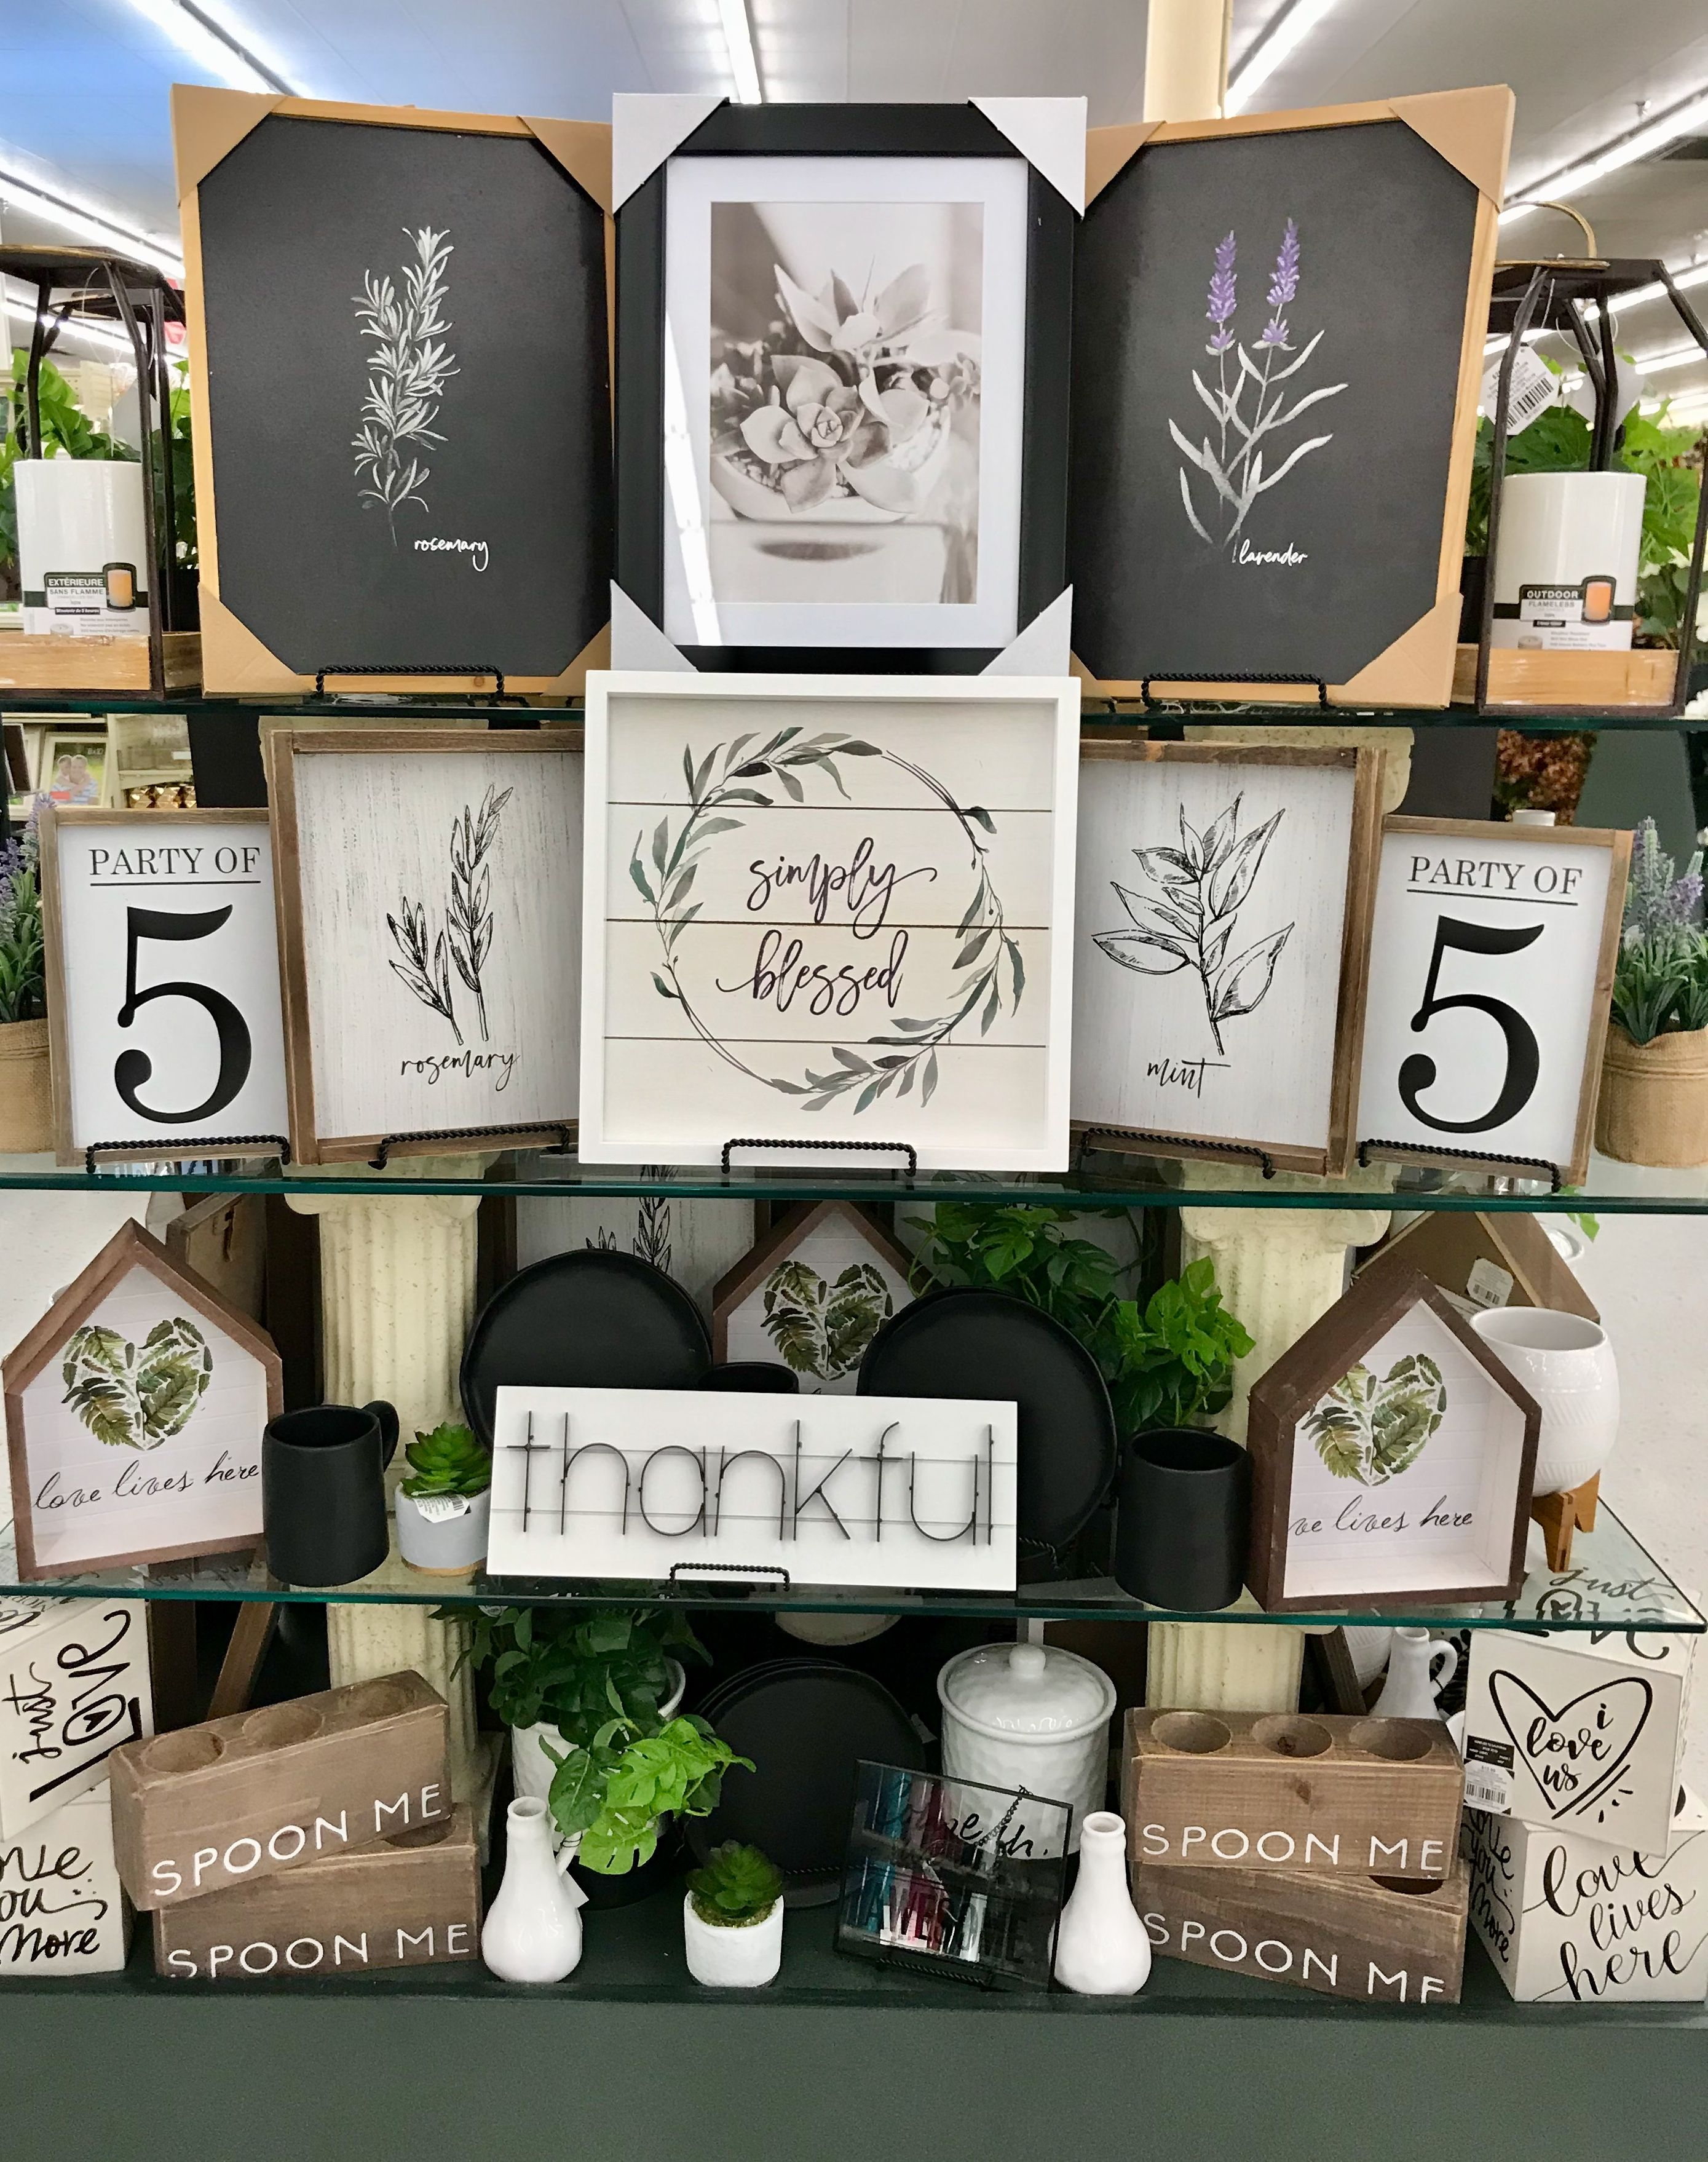 Hobby lobby merchandising table displays work (With images